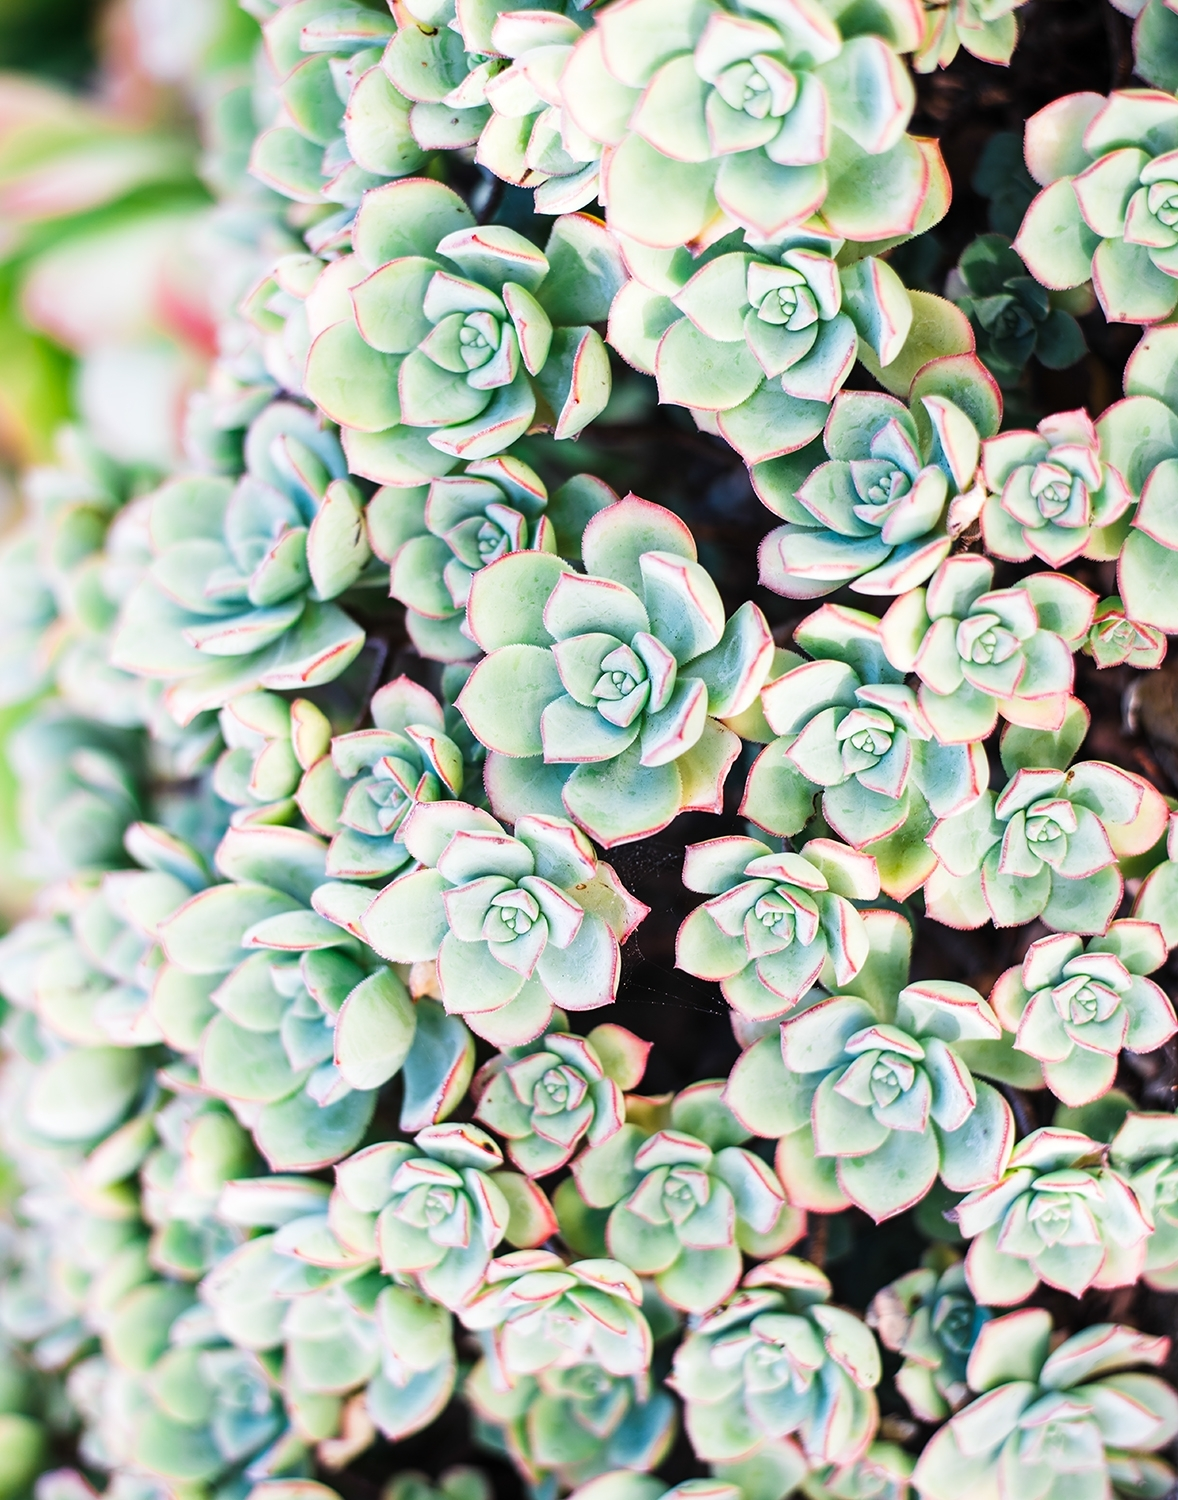 Succulent Wall Art | Home Decor Photography Print | Whitney Finuf Throughout Most Recent Succulent Wall Art (View 14 of 20)